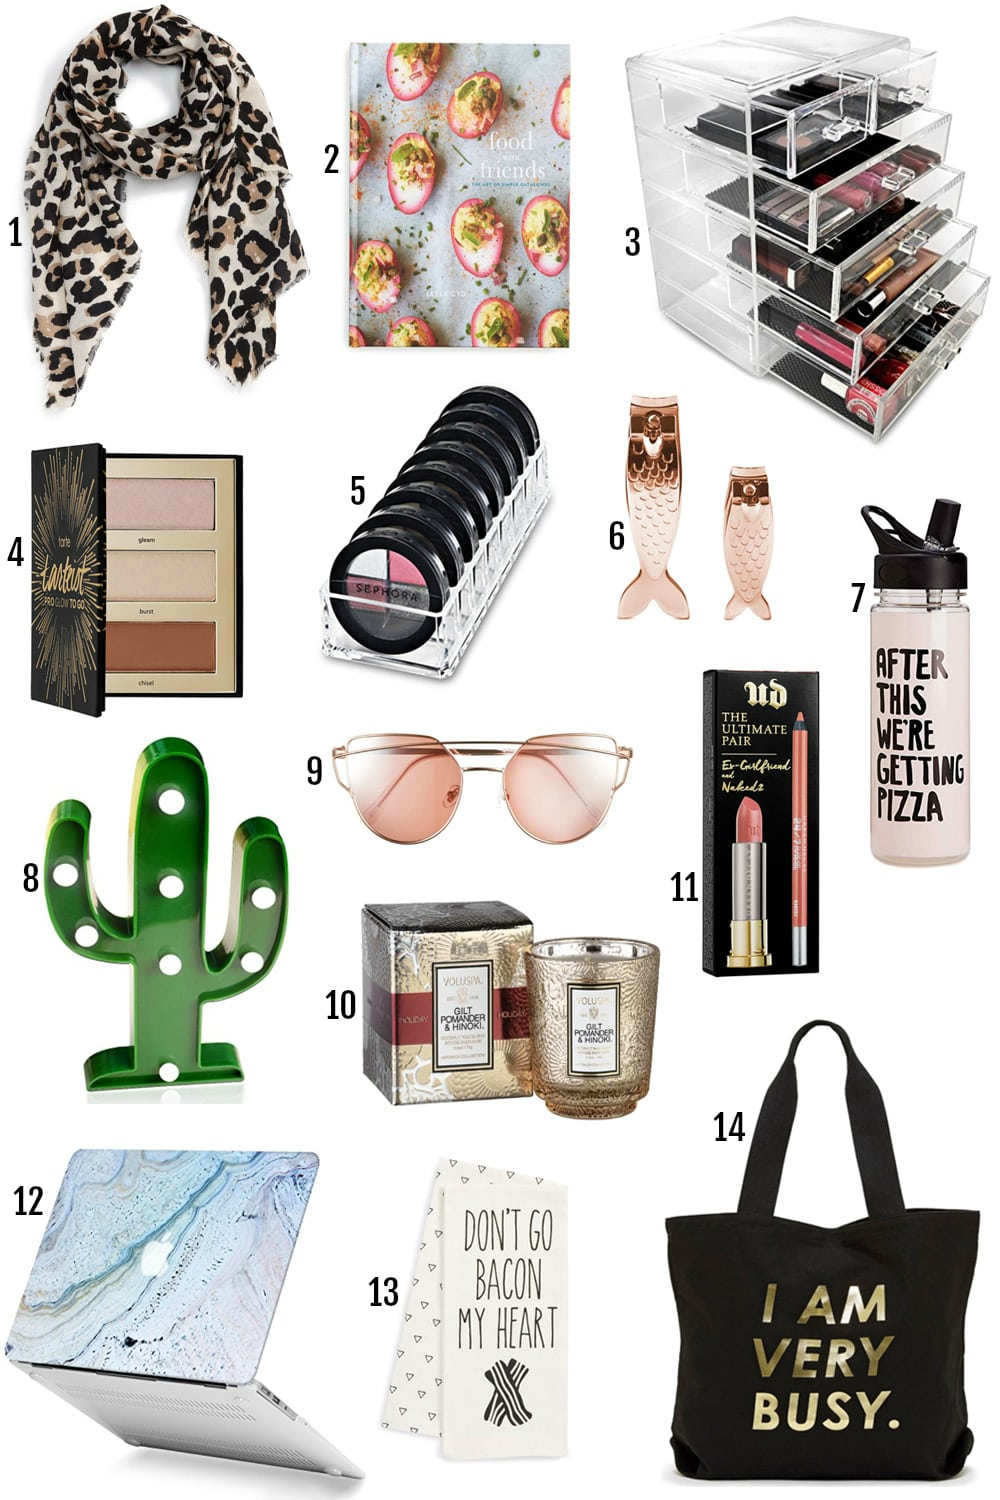 The BEST Gifts For Her Under $25 by popular Orlando style blogger Mash Elle | gifts for fit girls | gifts for girls who love yoga | mermaids, cactus, bacon, I am very busy, urban decay, pizza, leopard print